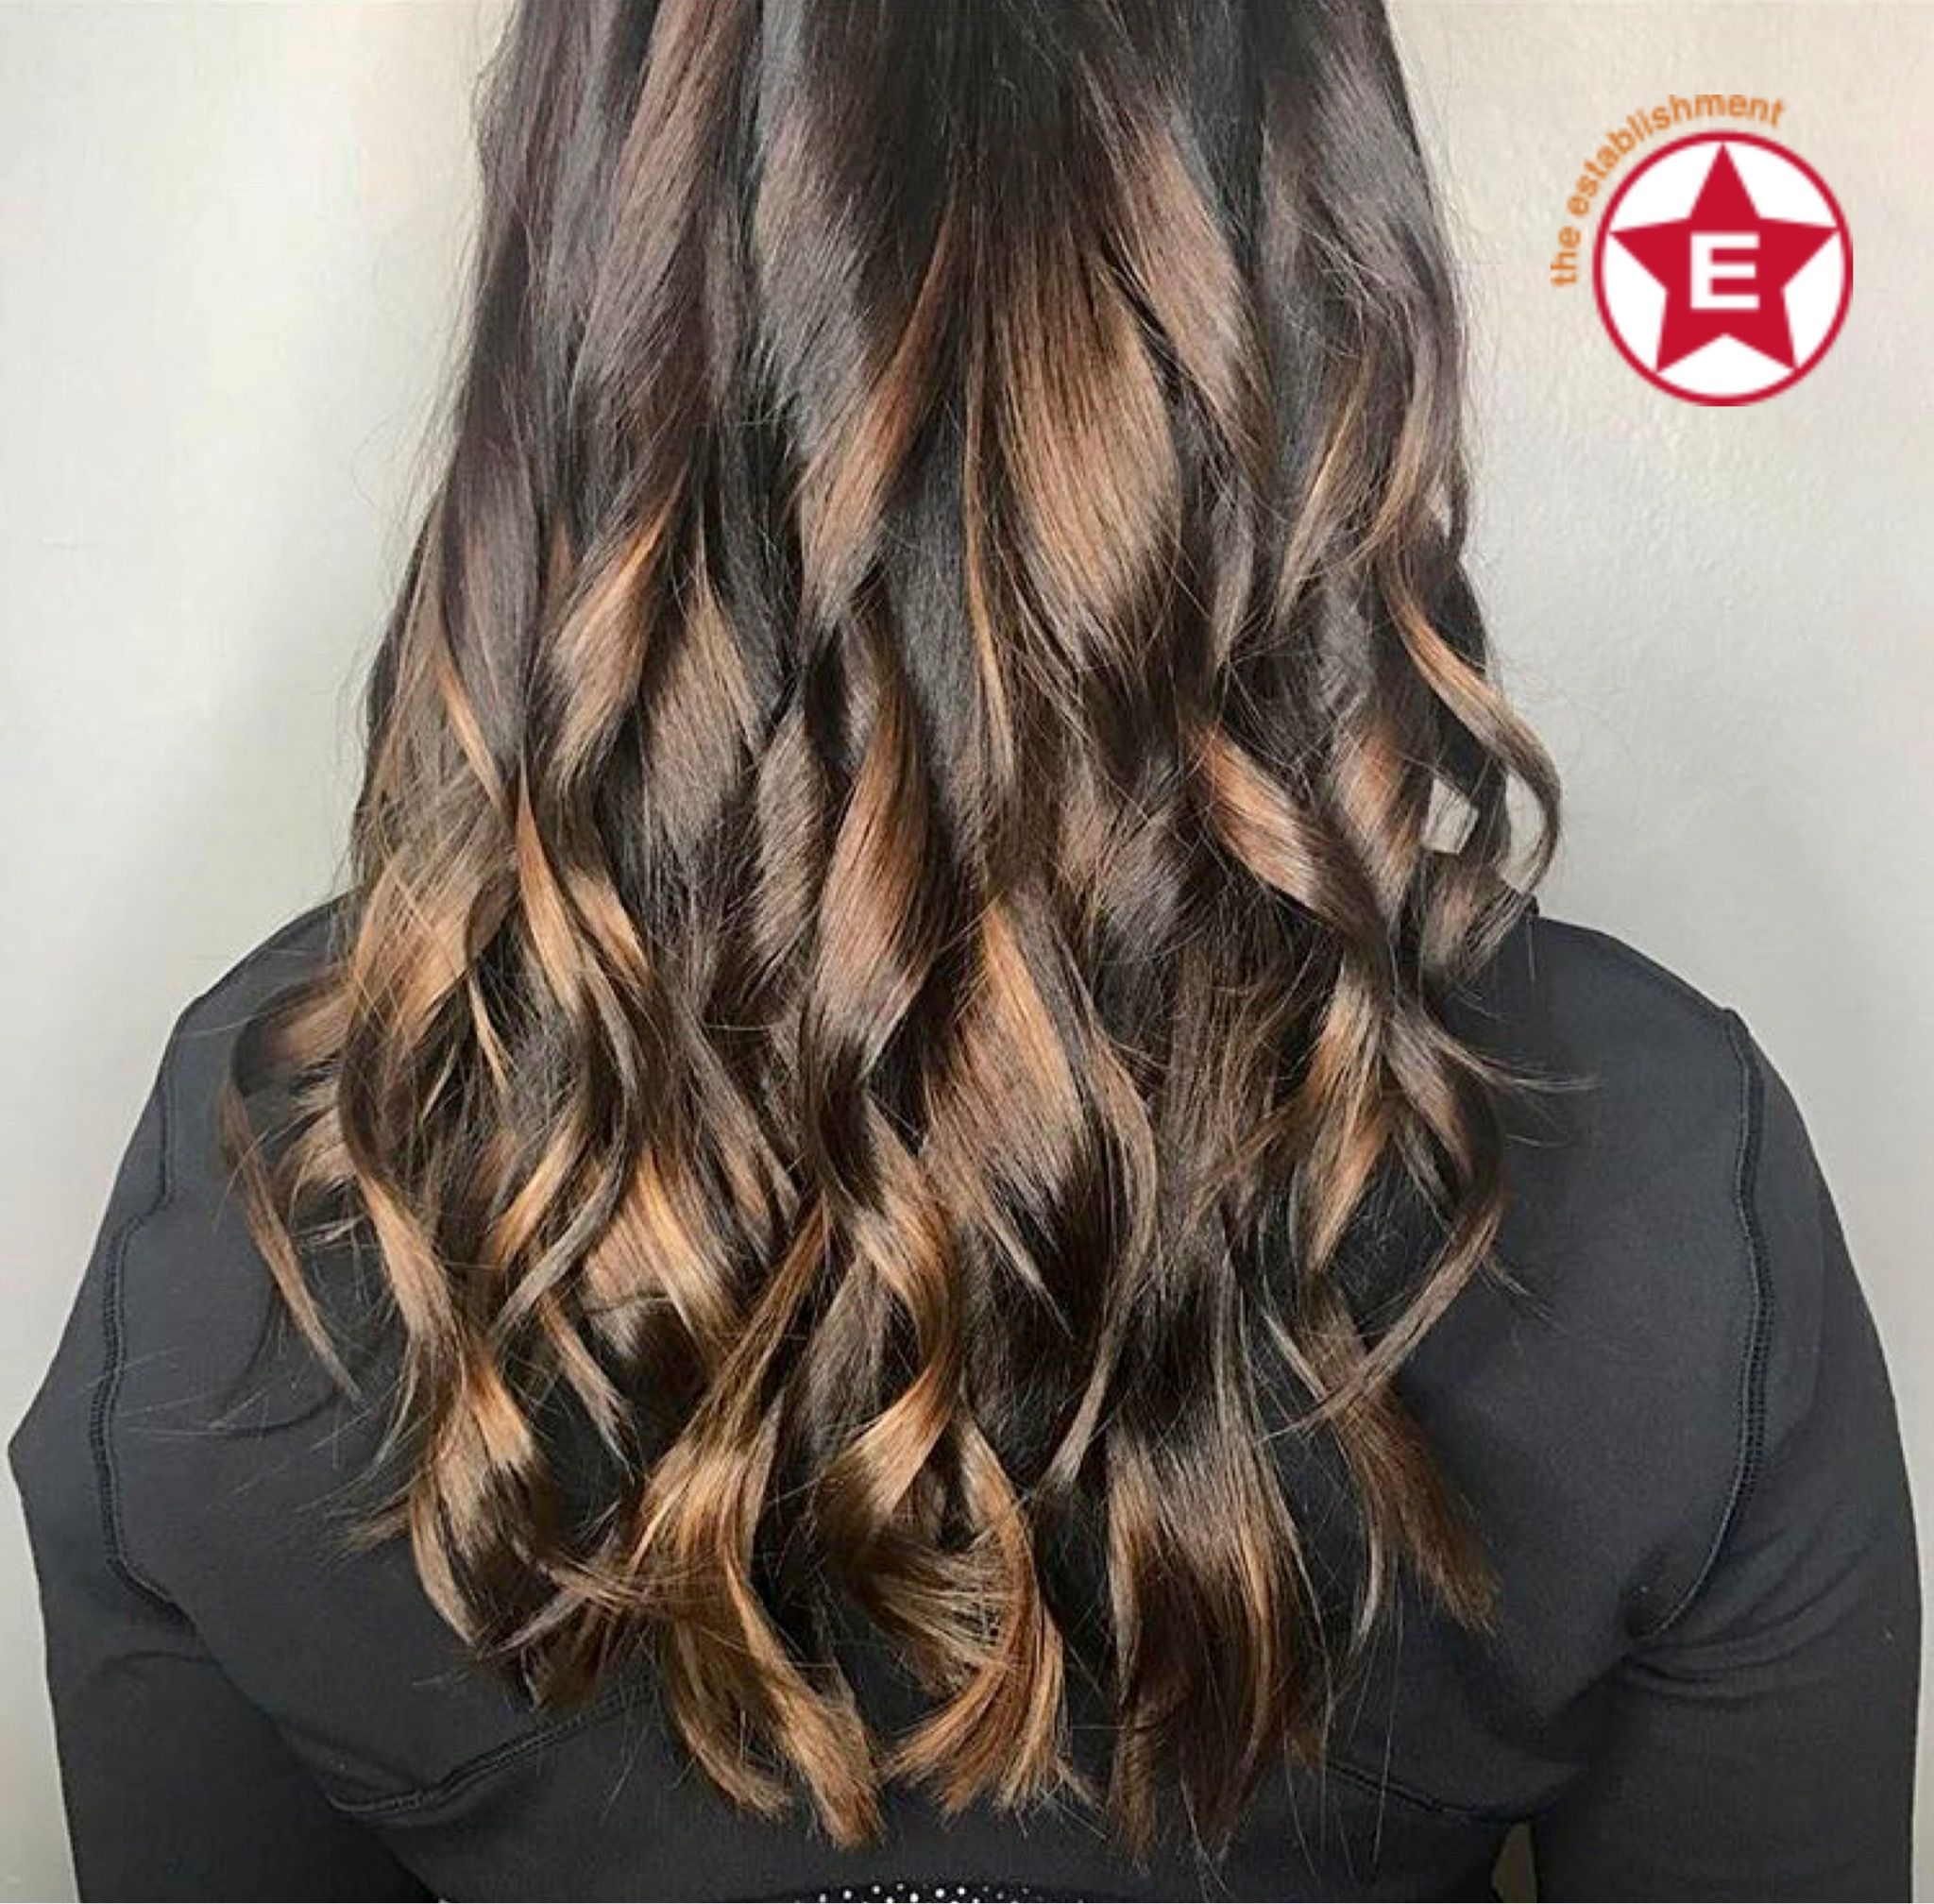 Dark Toned Aveda Balayage By Steph At The Establishment In Milwaukee Long Hair Styles Hair Styles Balayage